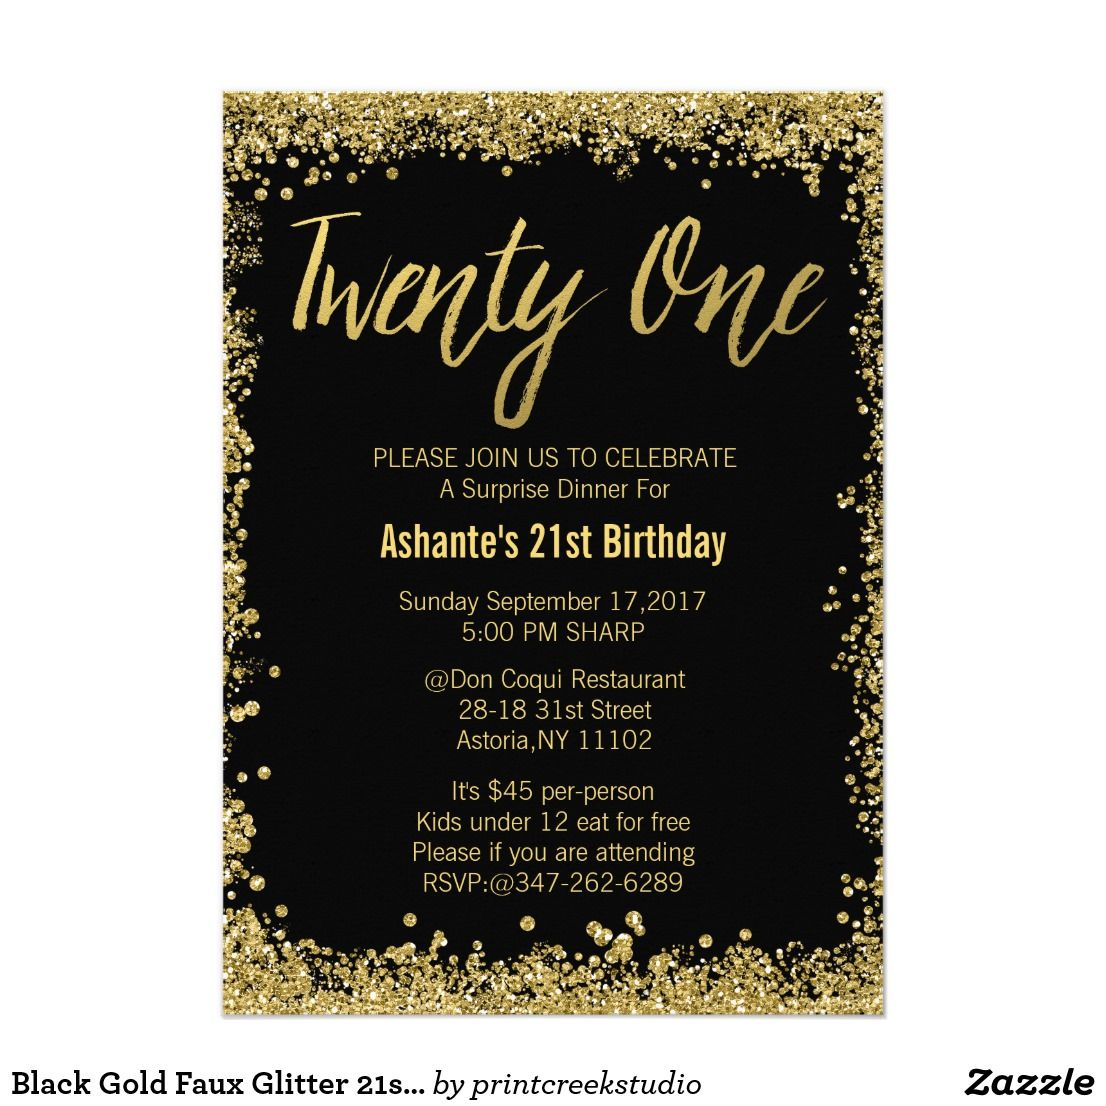 Black Gold Faux Glitter 21st Birthday Invitations | 21st birthday ...